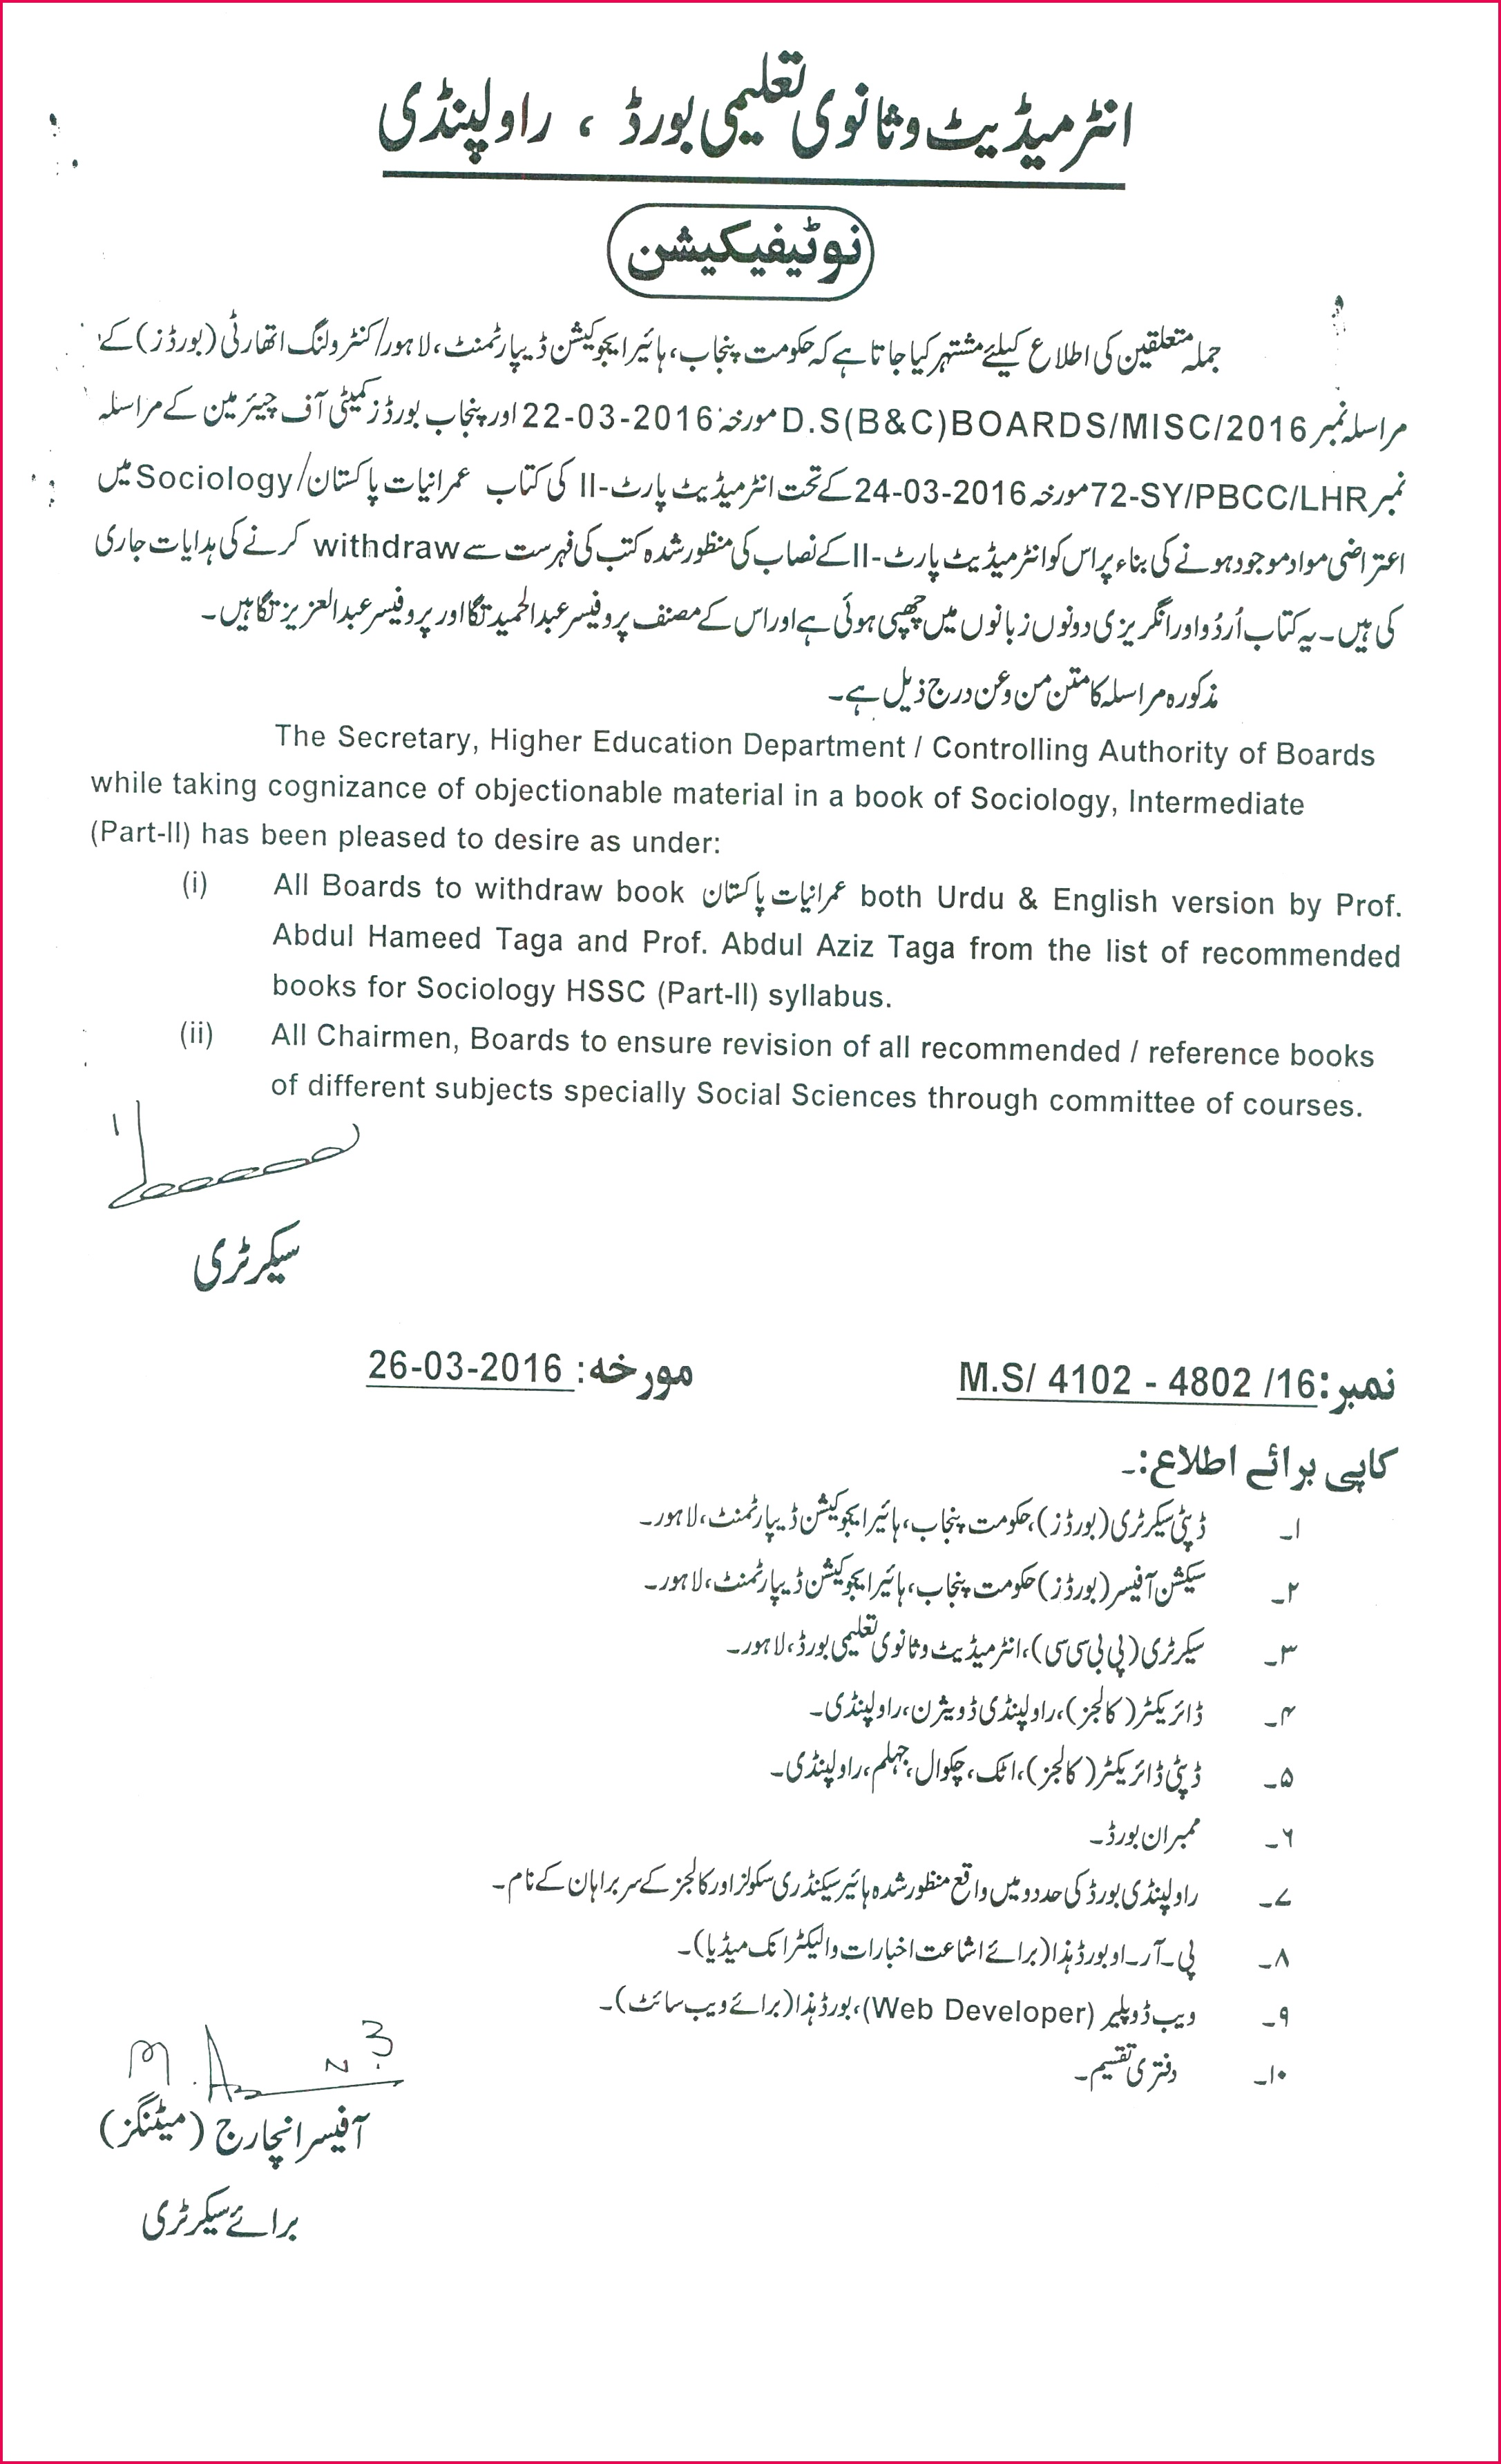 Withdraw book of عمرانیات پاکستان both urdu and english versions by Prof Abdul Hameed Taga and Prof Abdul Aziz Taga from list of Redomended books of